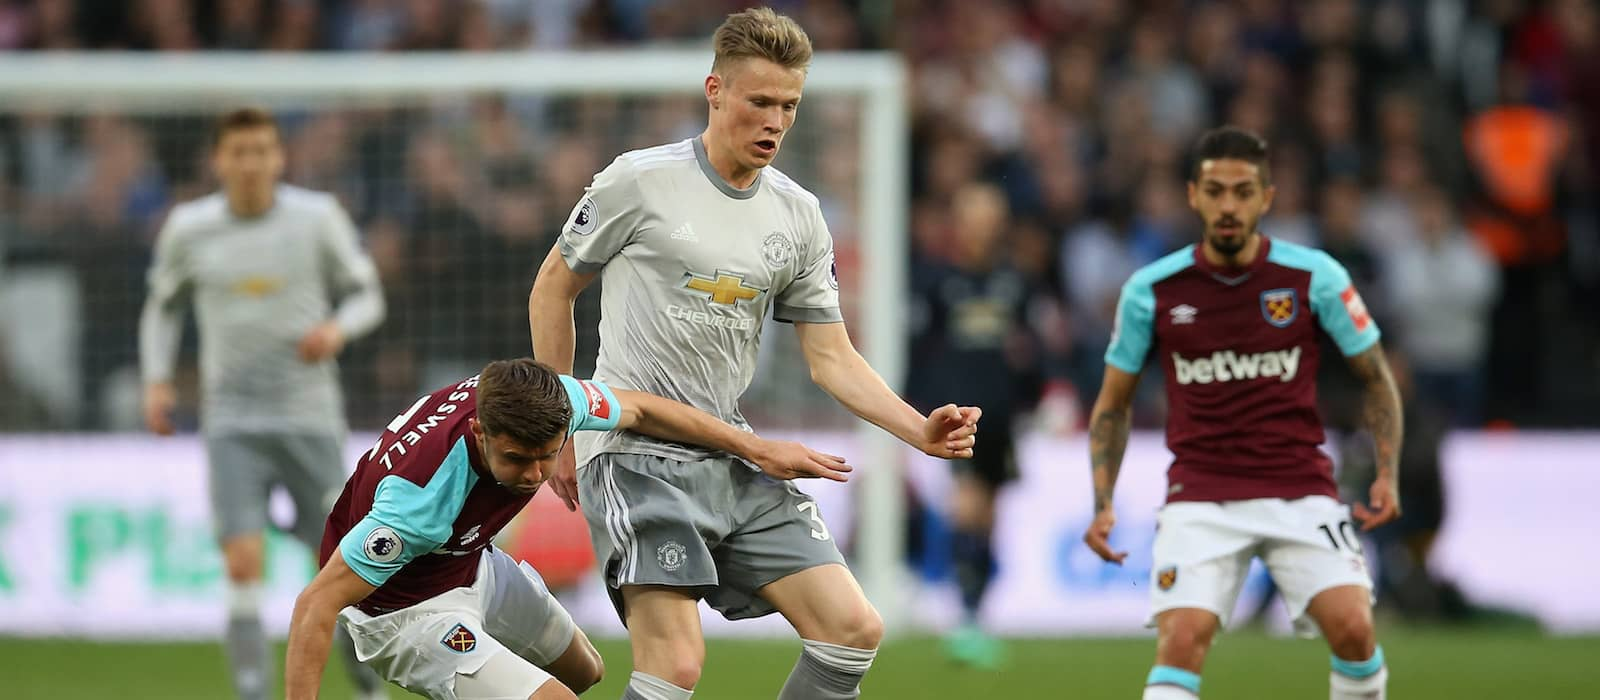 Manchester United fans disappointed with Scott McTominay's performance vs Liverpool